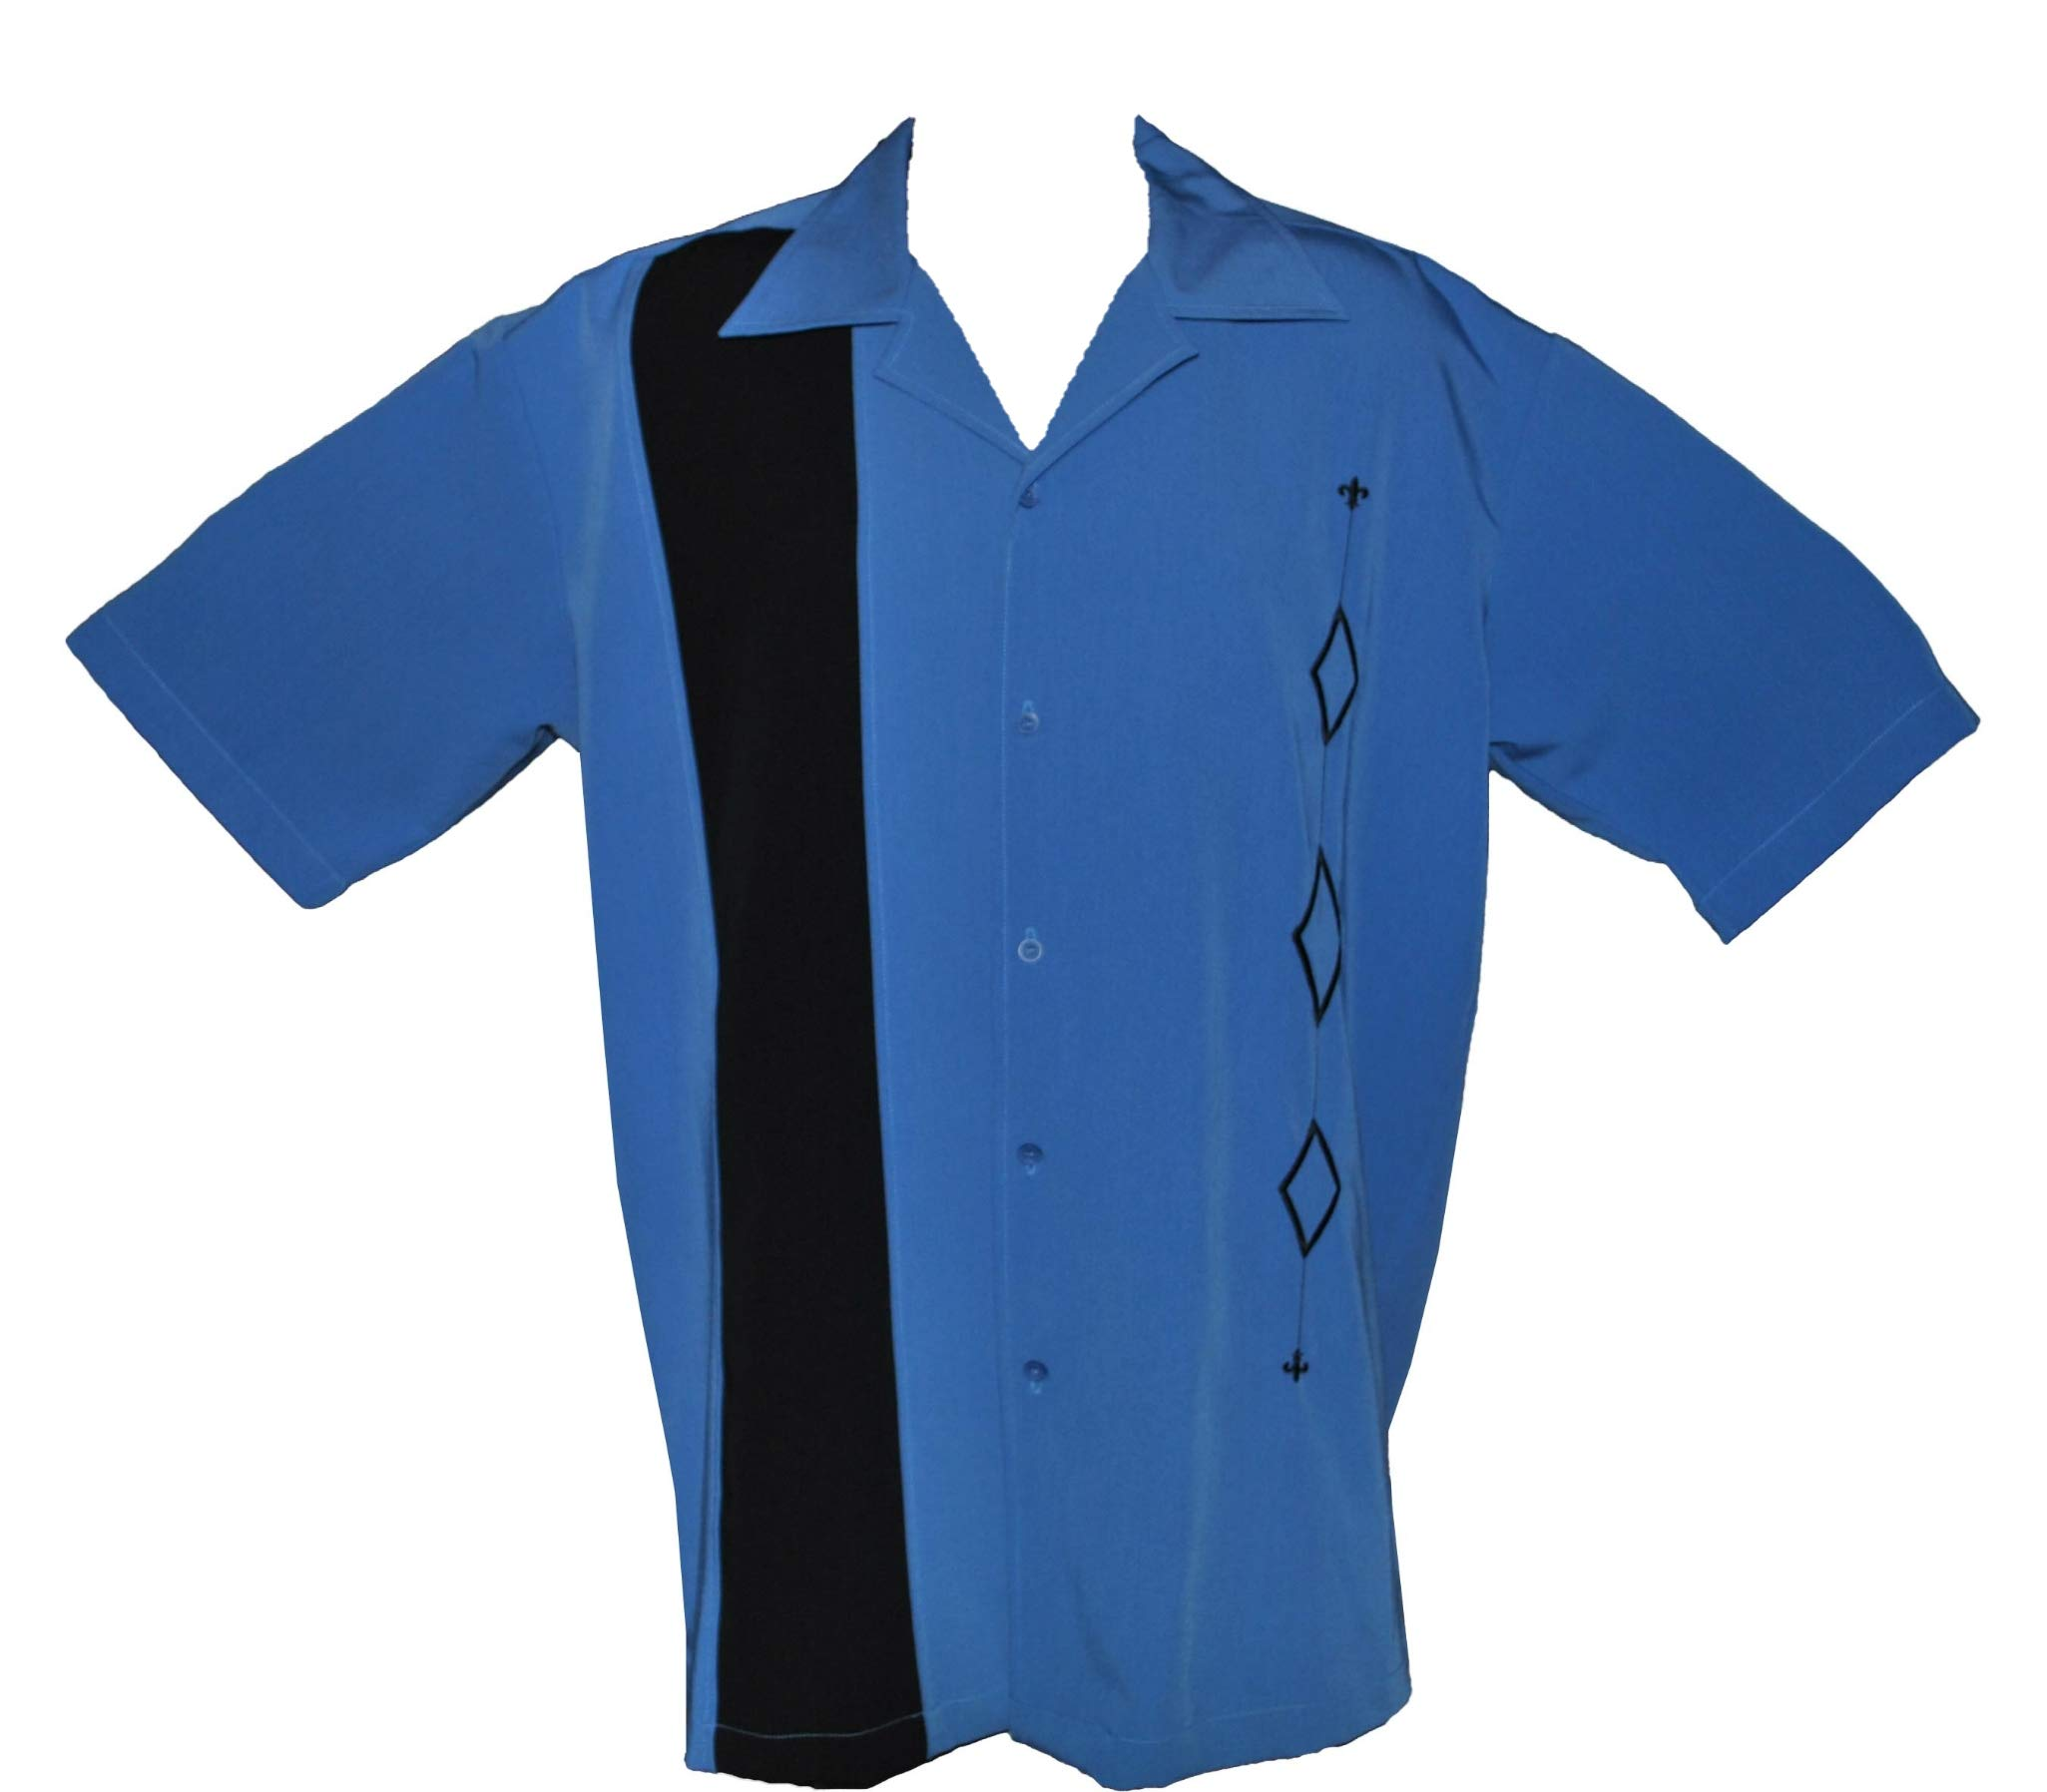 Designs by Attila Mens Retro Bowling Shirt, Big & Tall Sizes. Alaska Blue, Size 3XLT by Designs by Attila